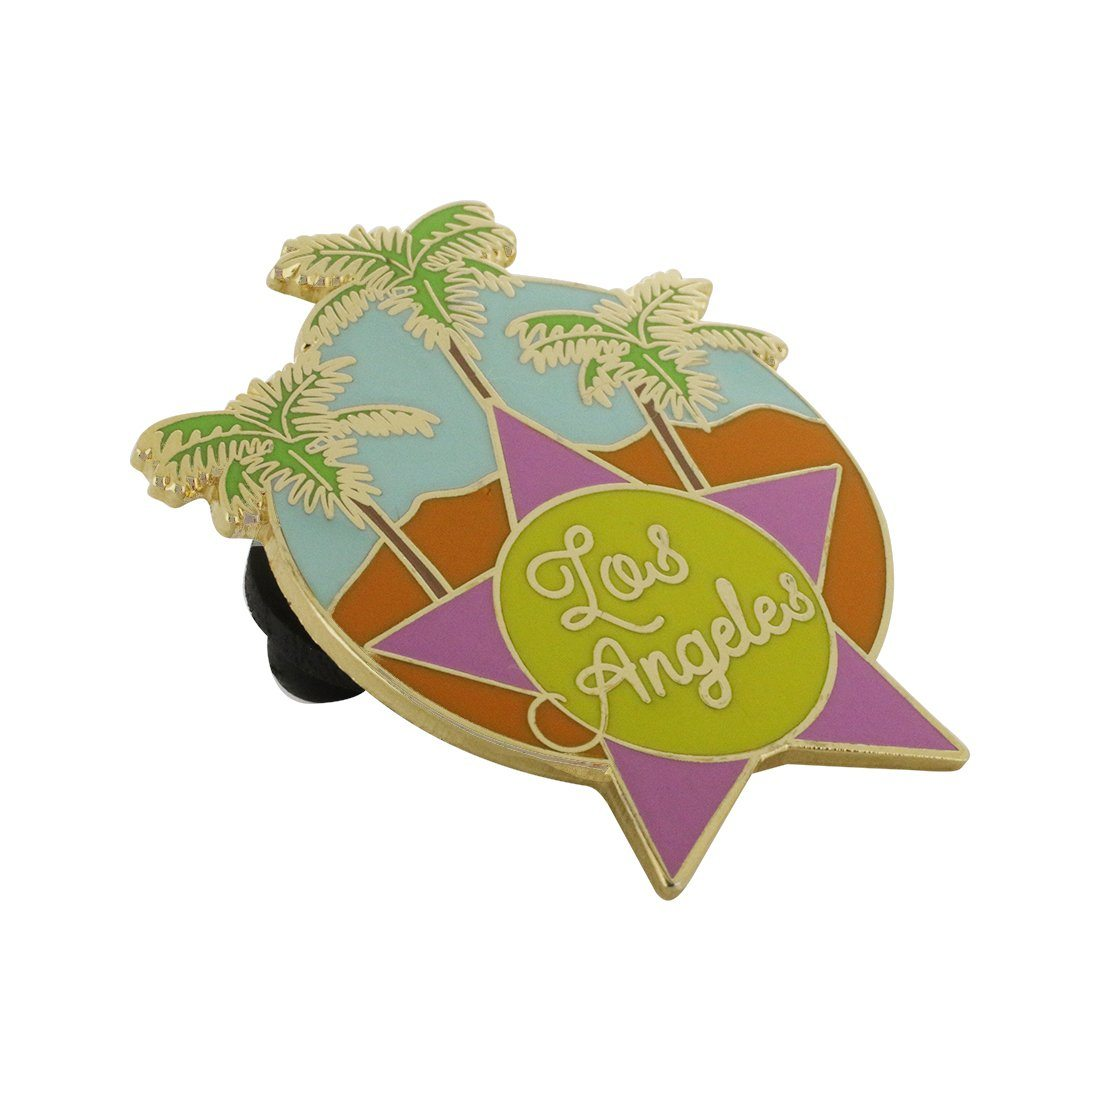 Los Angeles Hollywood Star Palm Tree Beach Souvenir Pin